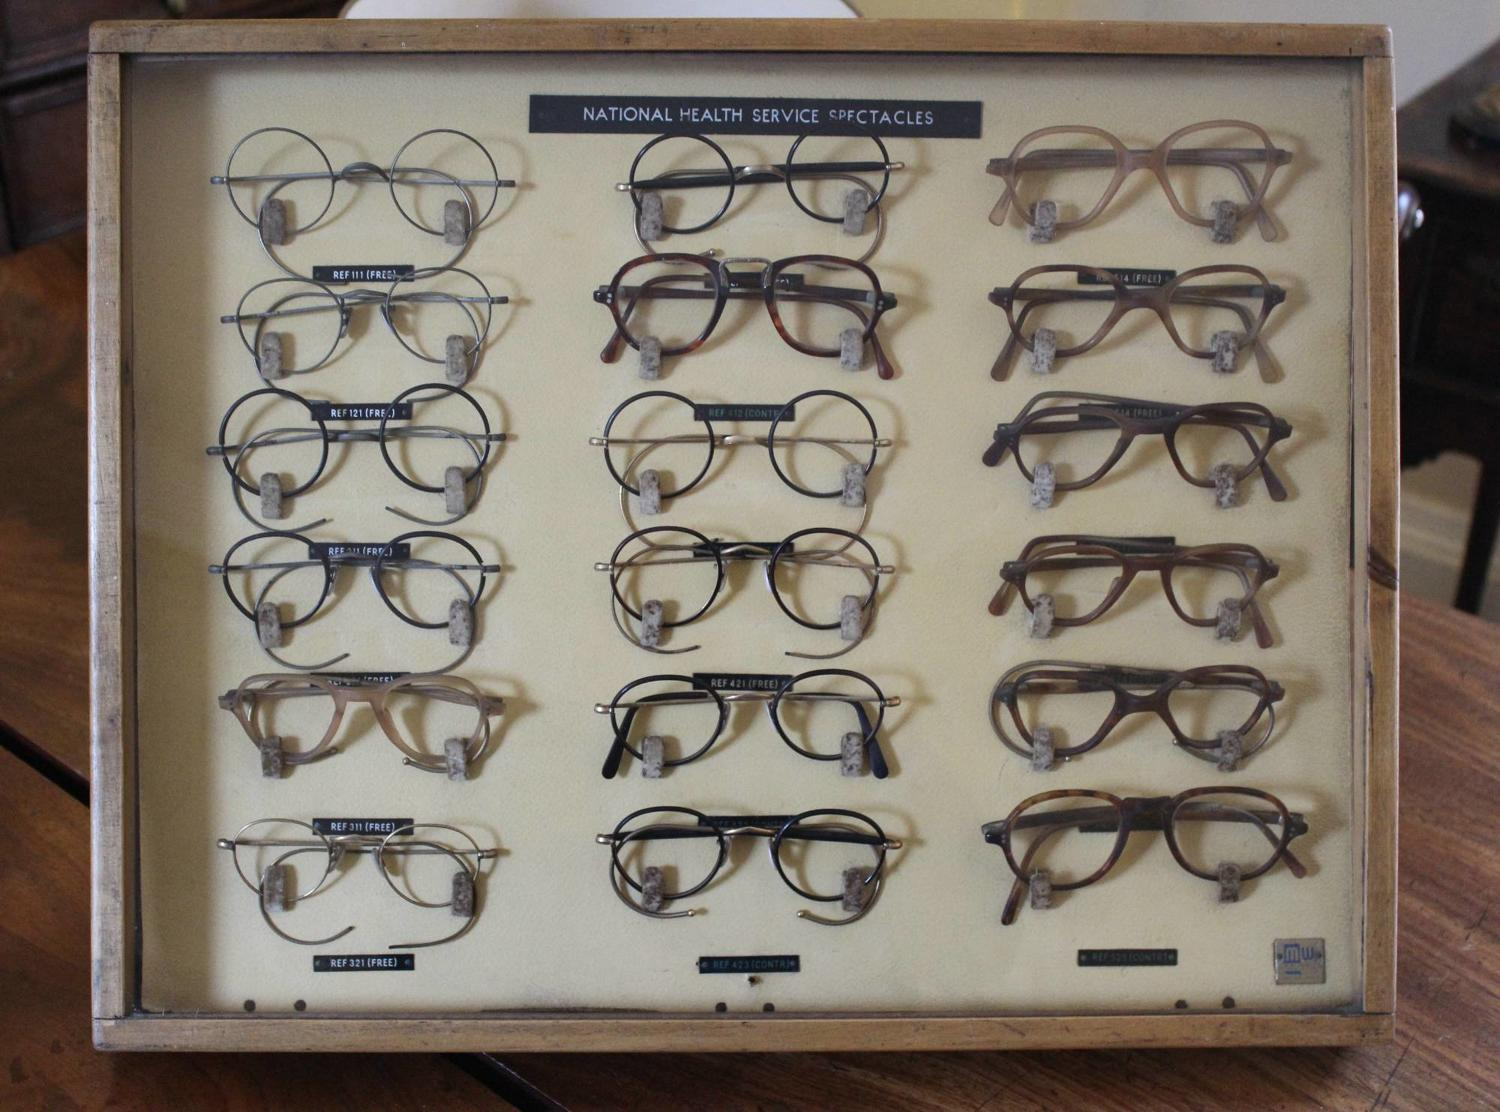 A 1940s Cased Display of National Health Spectacles